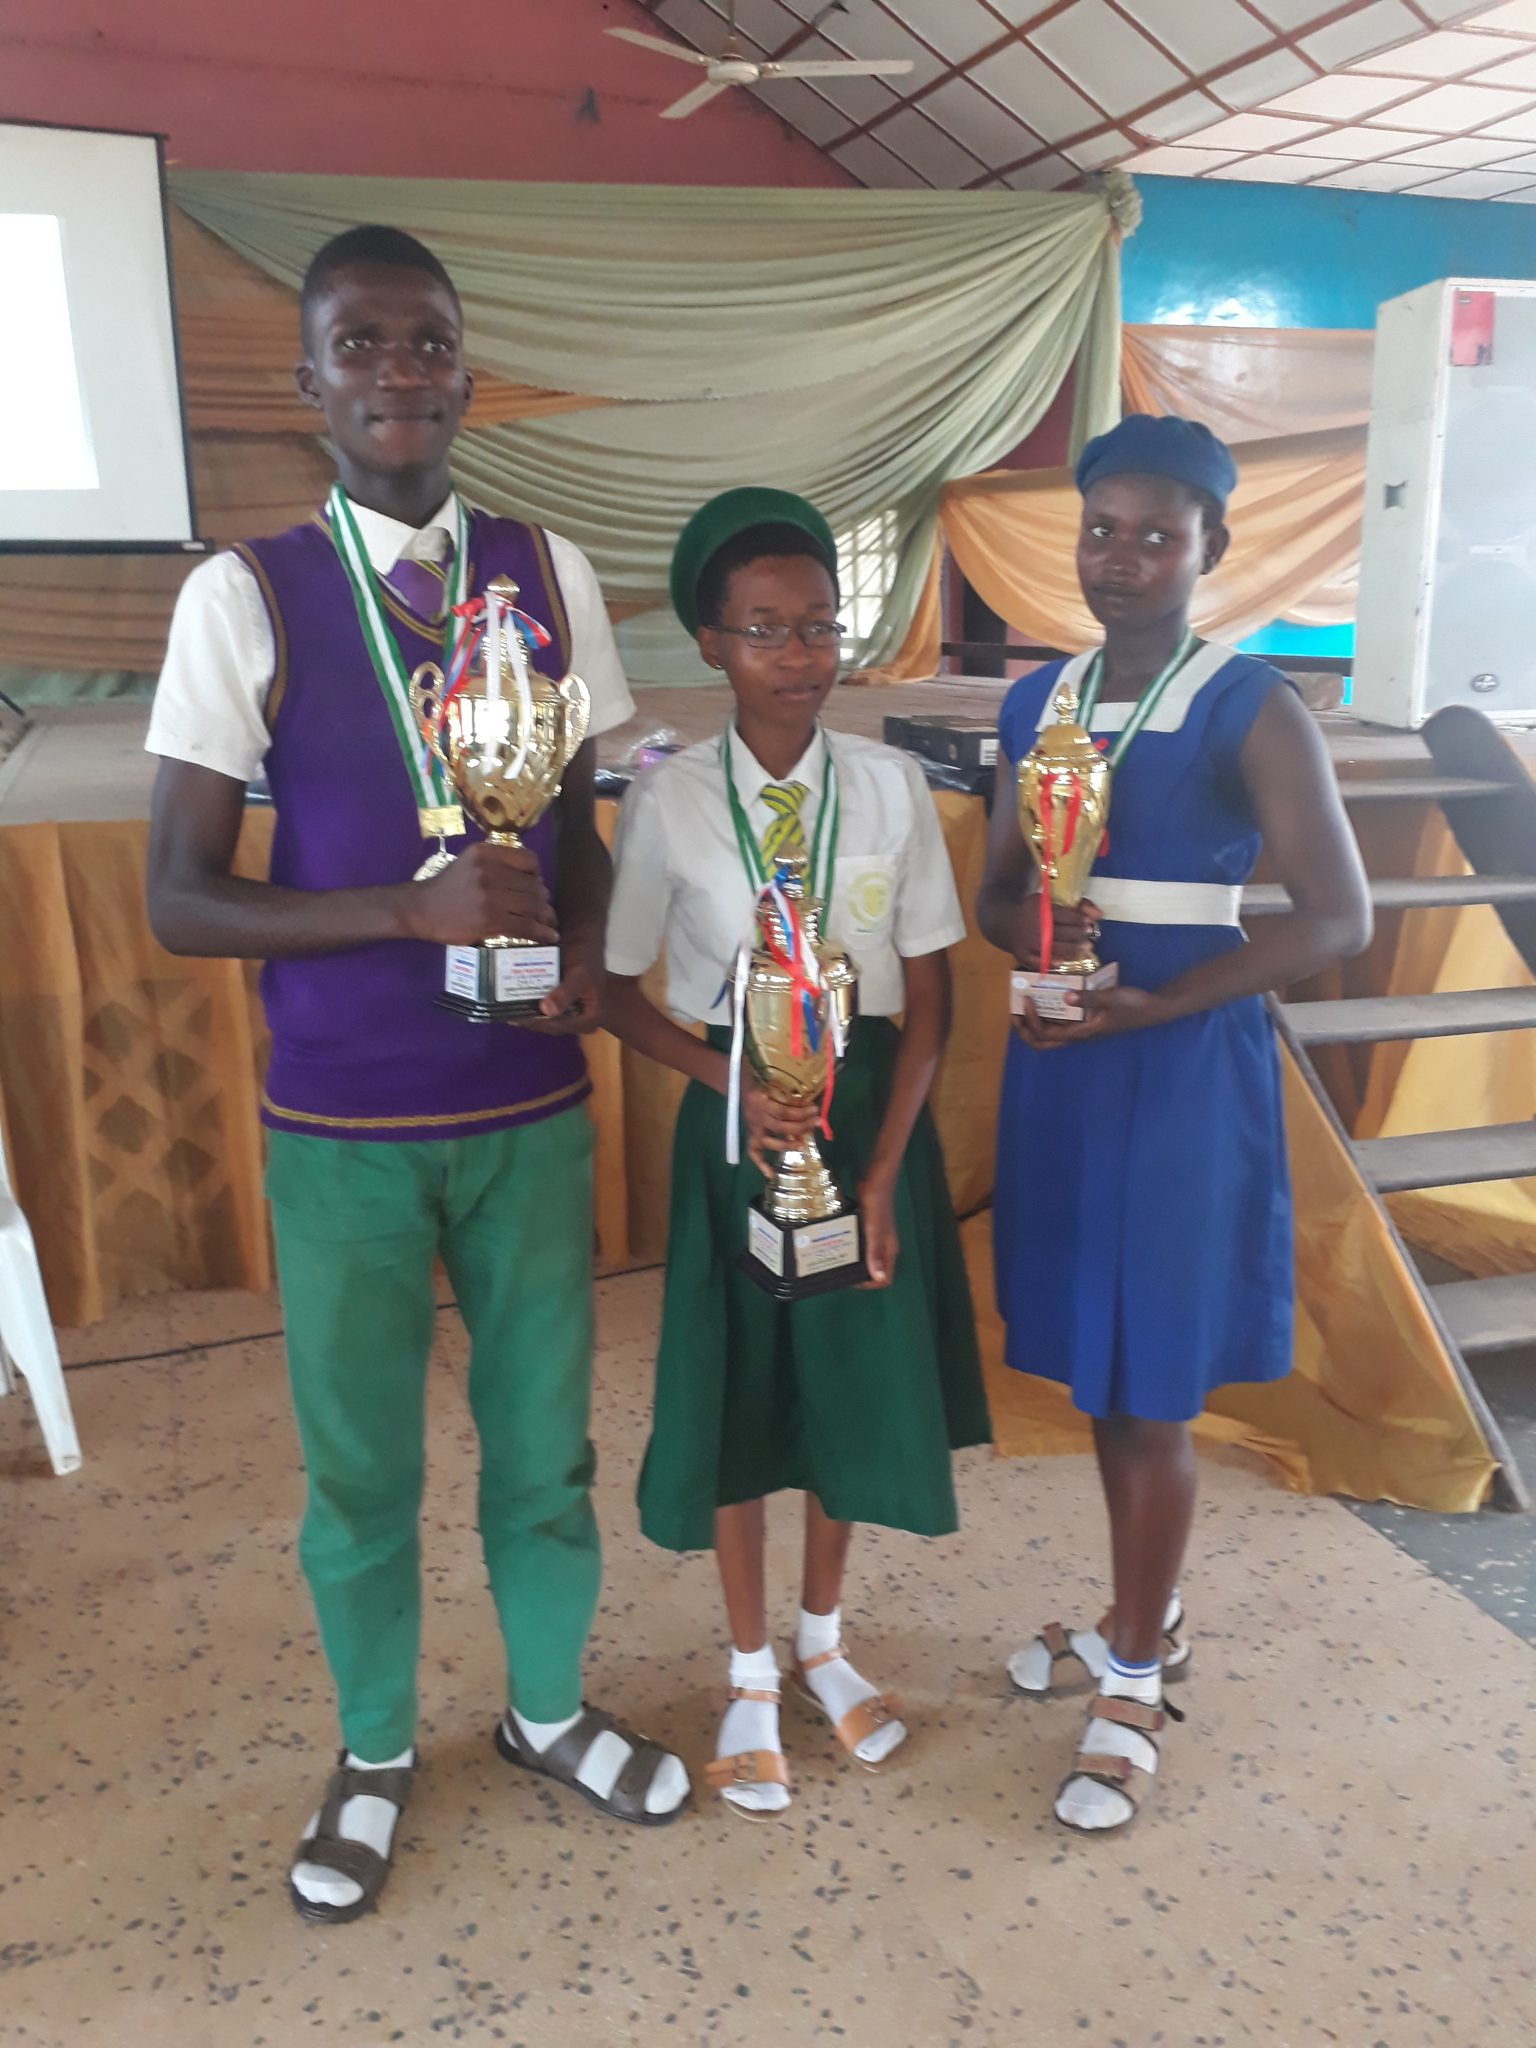 Promoting educaation and knowledge among youths